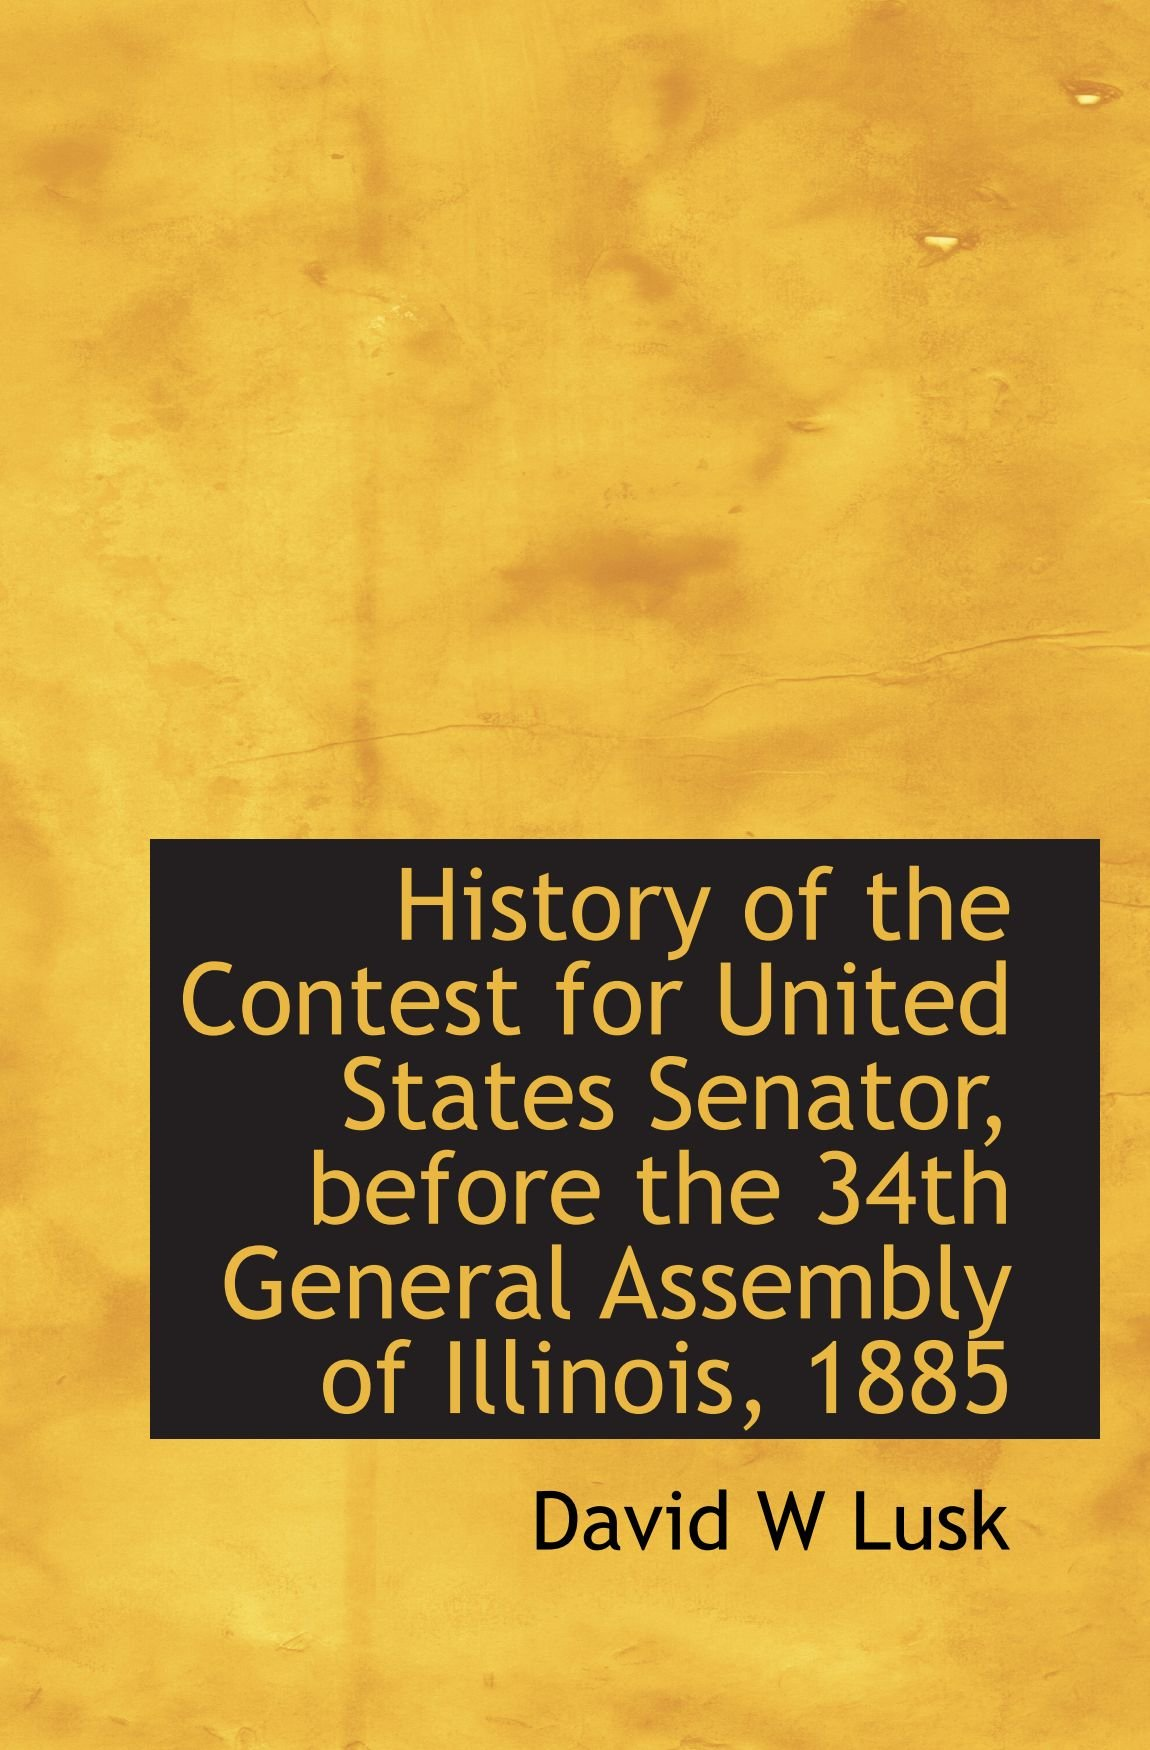 Read Online History of the Contest for United States Senator, before the 34th General Assembly of Illinois, 1885 PDF